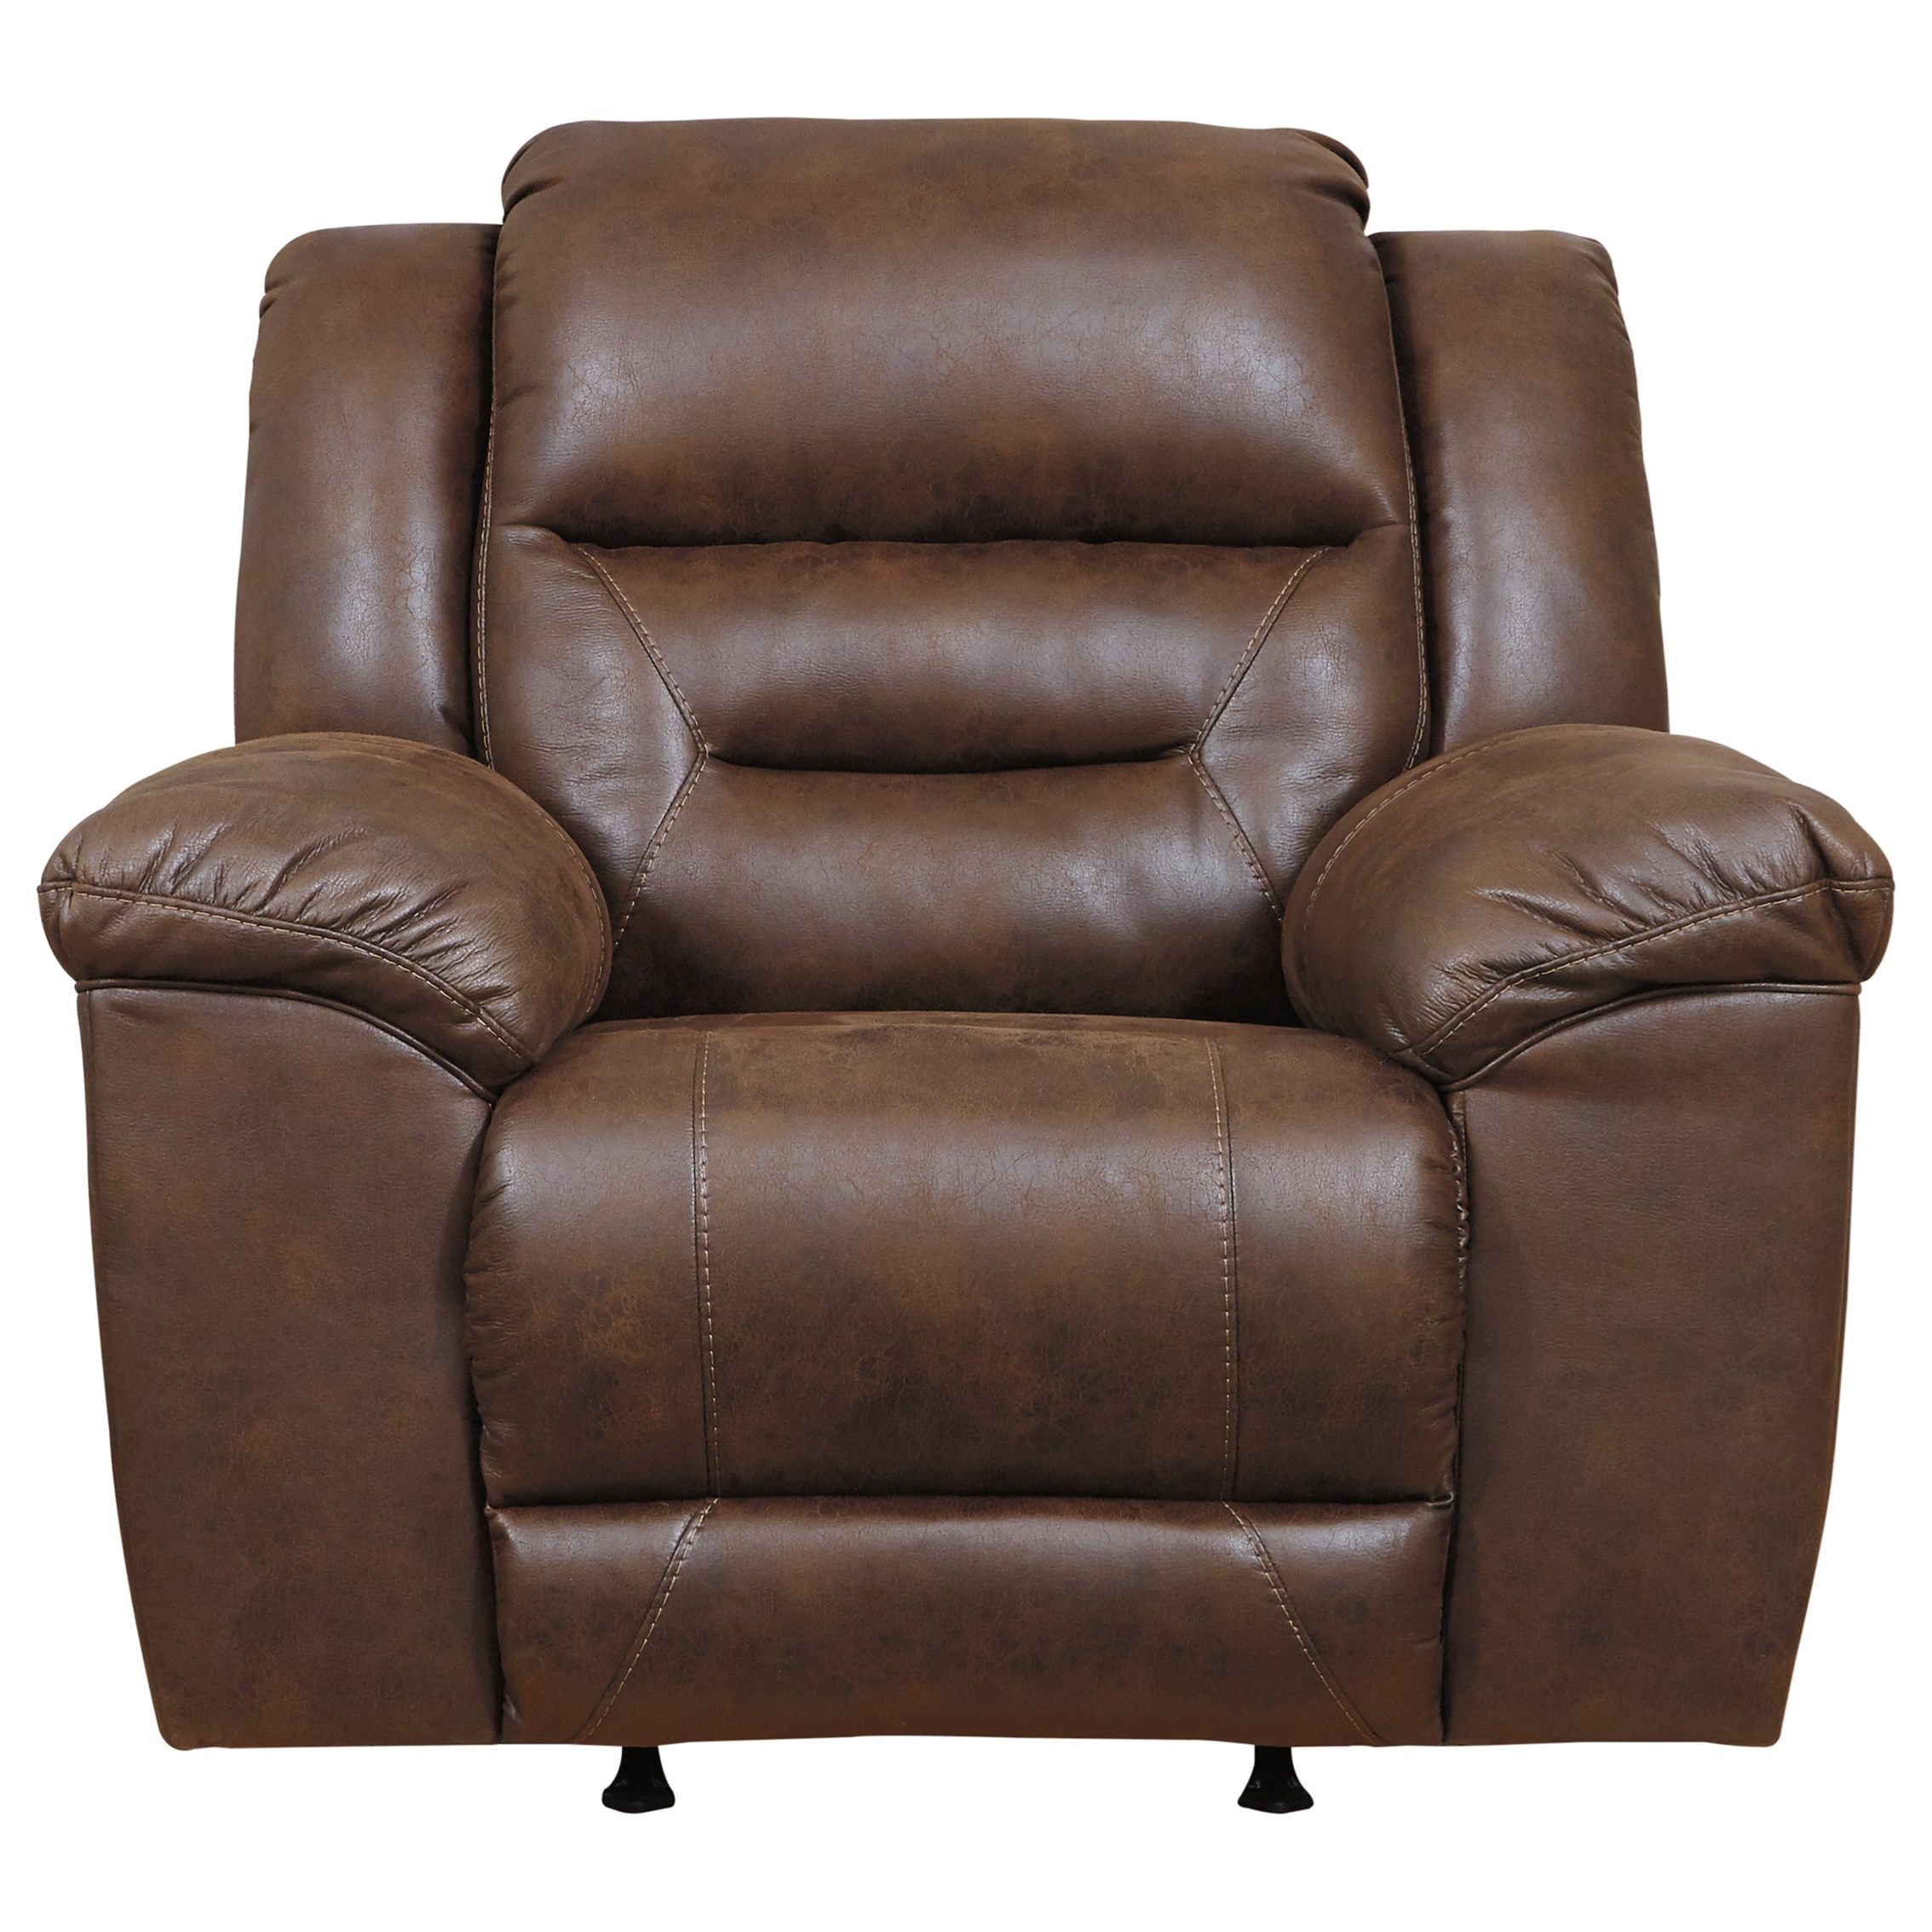 Stoneland Rocker Recliner by Signature Design by Ashley at Household Furniture